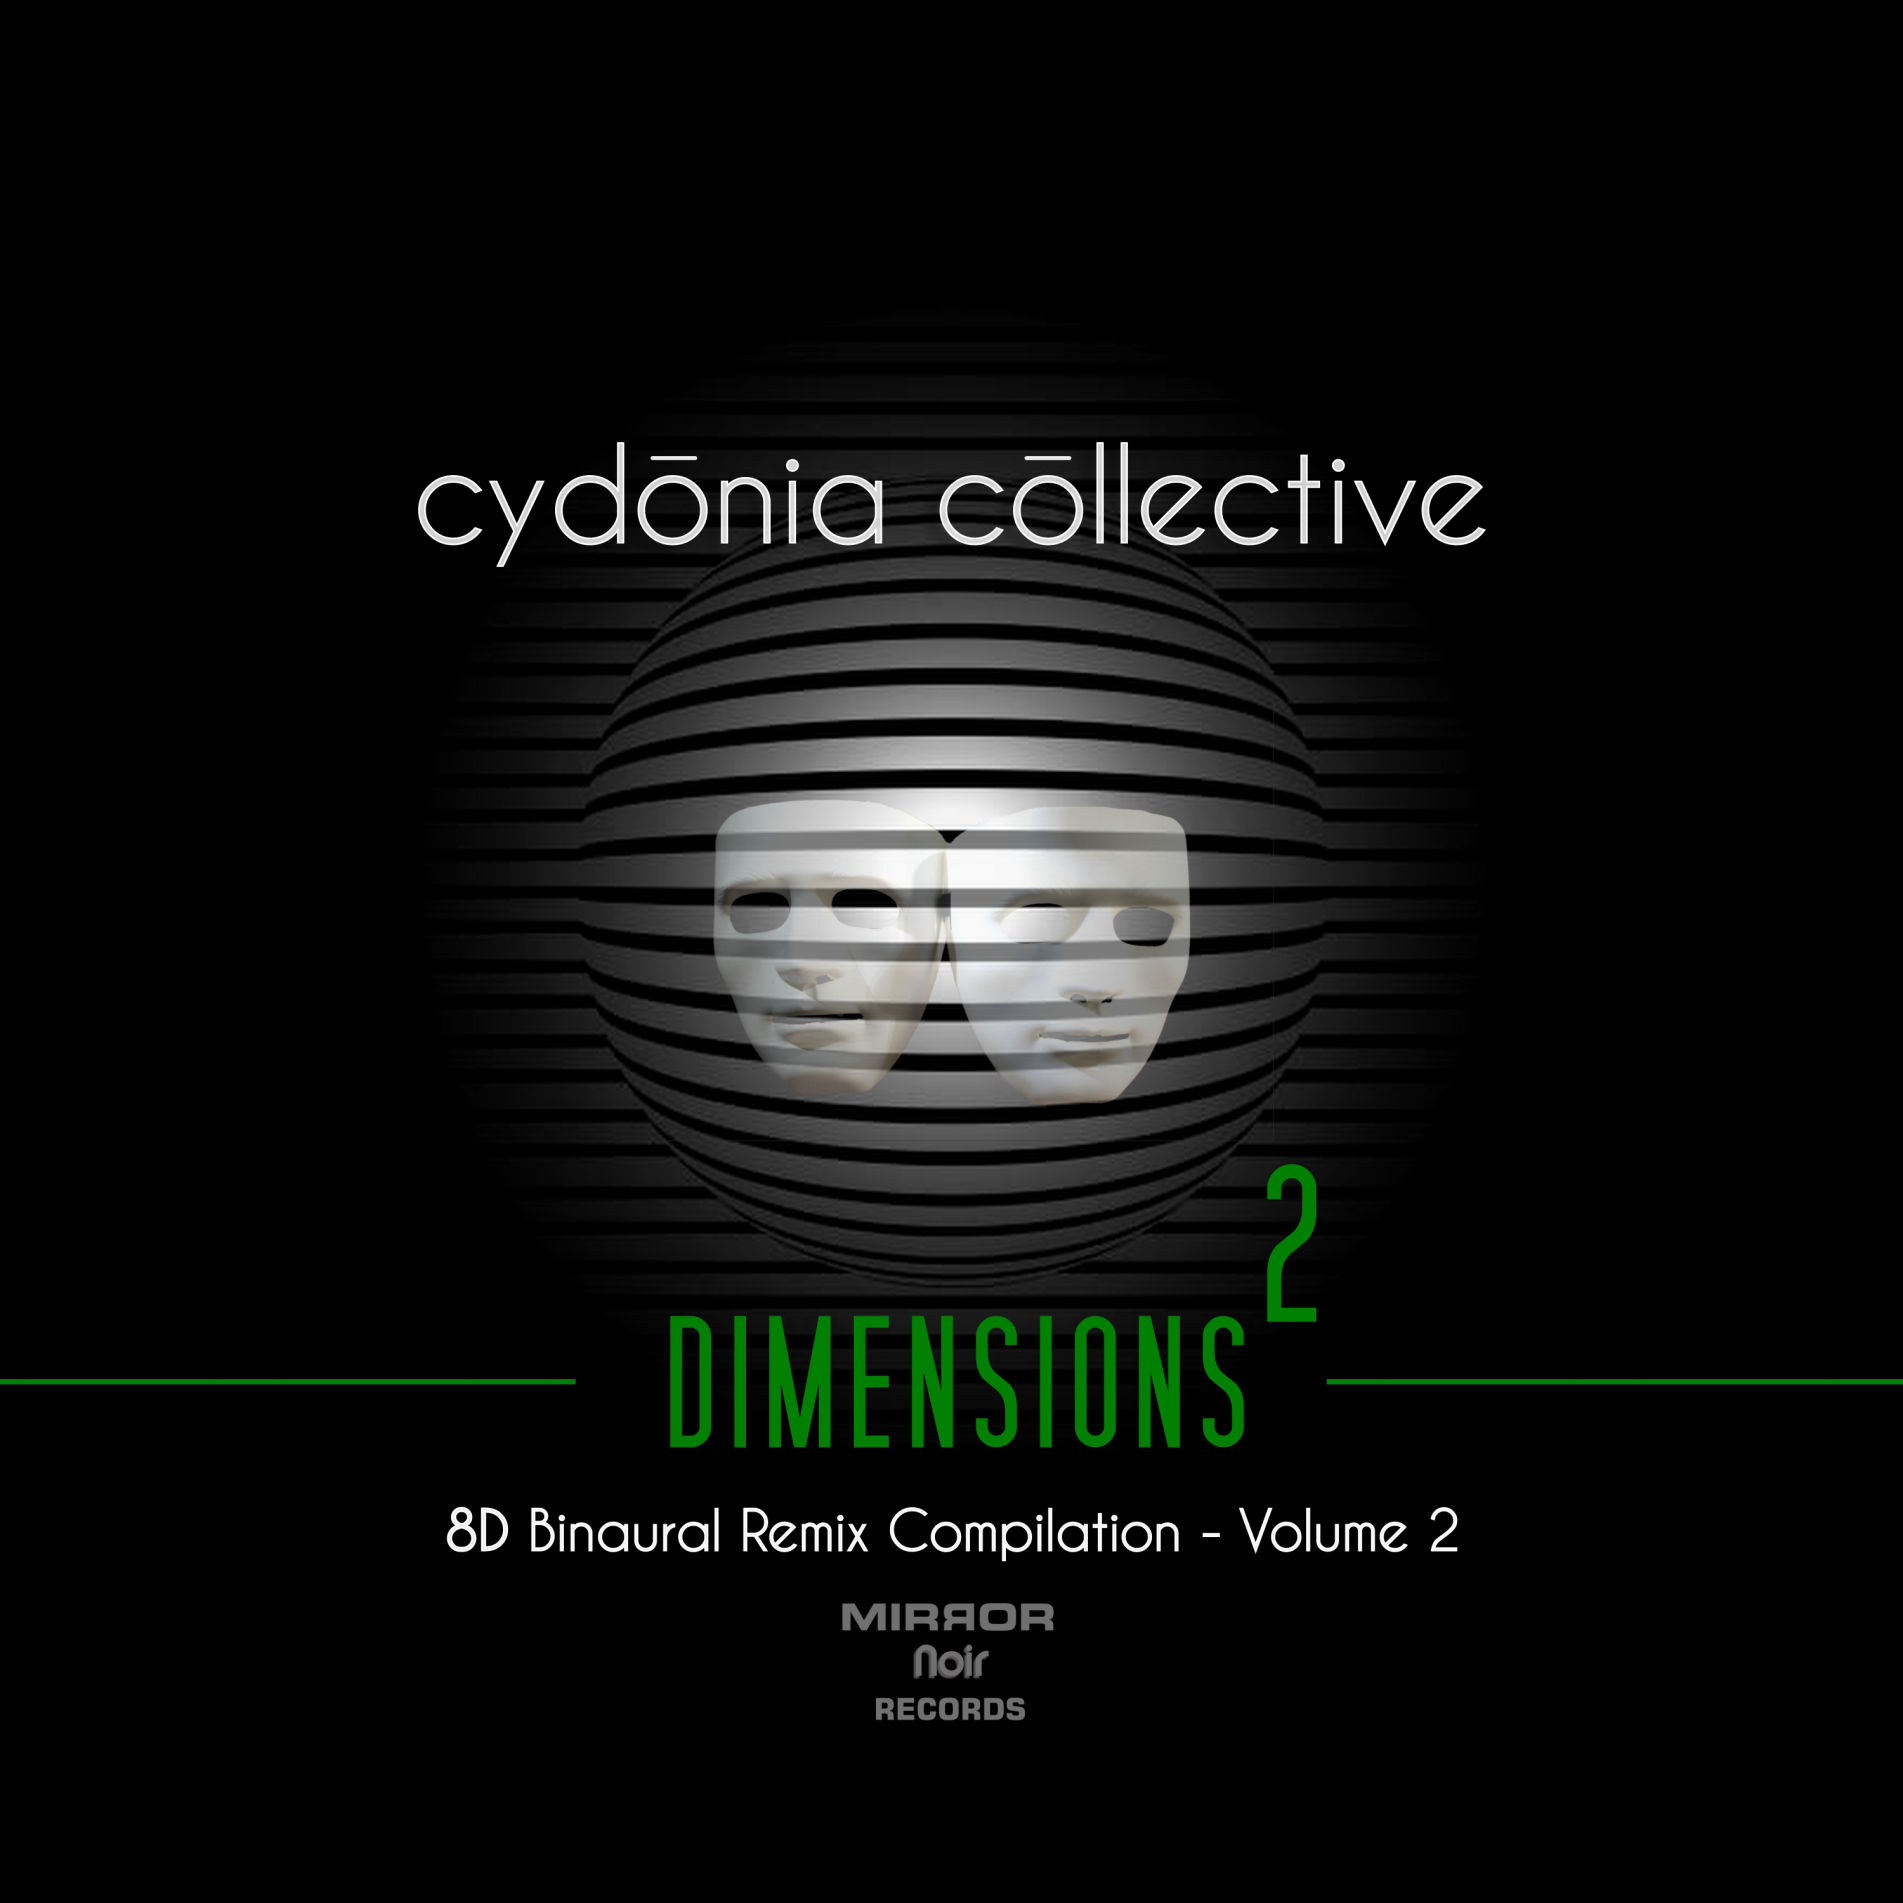 Dimensions 2 - The Cydonia Collective